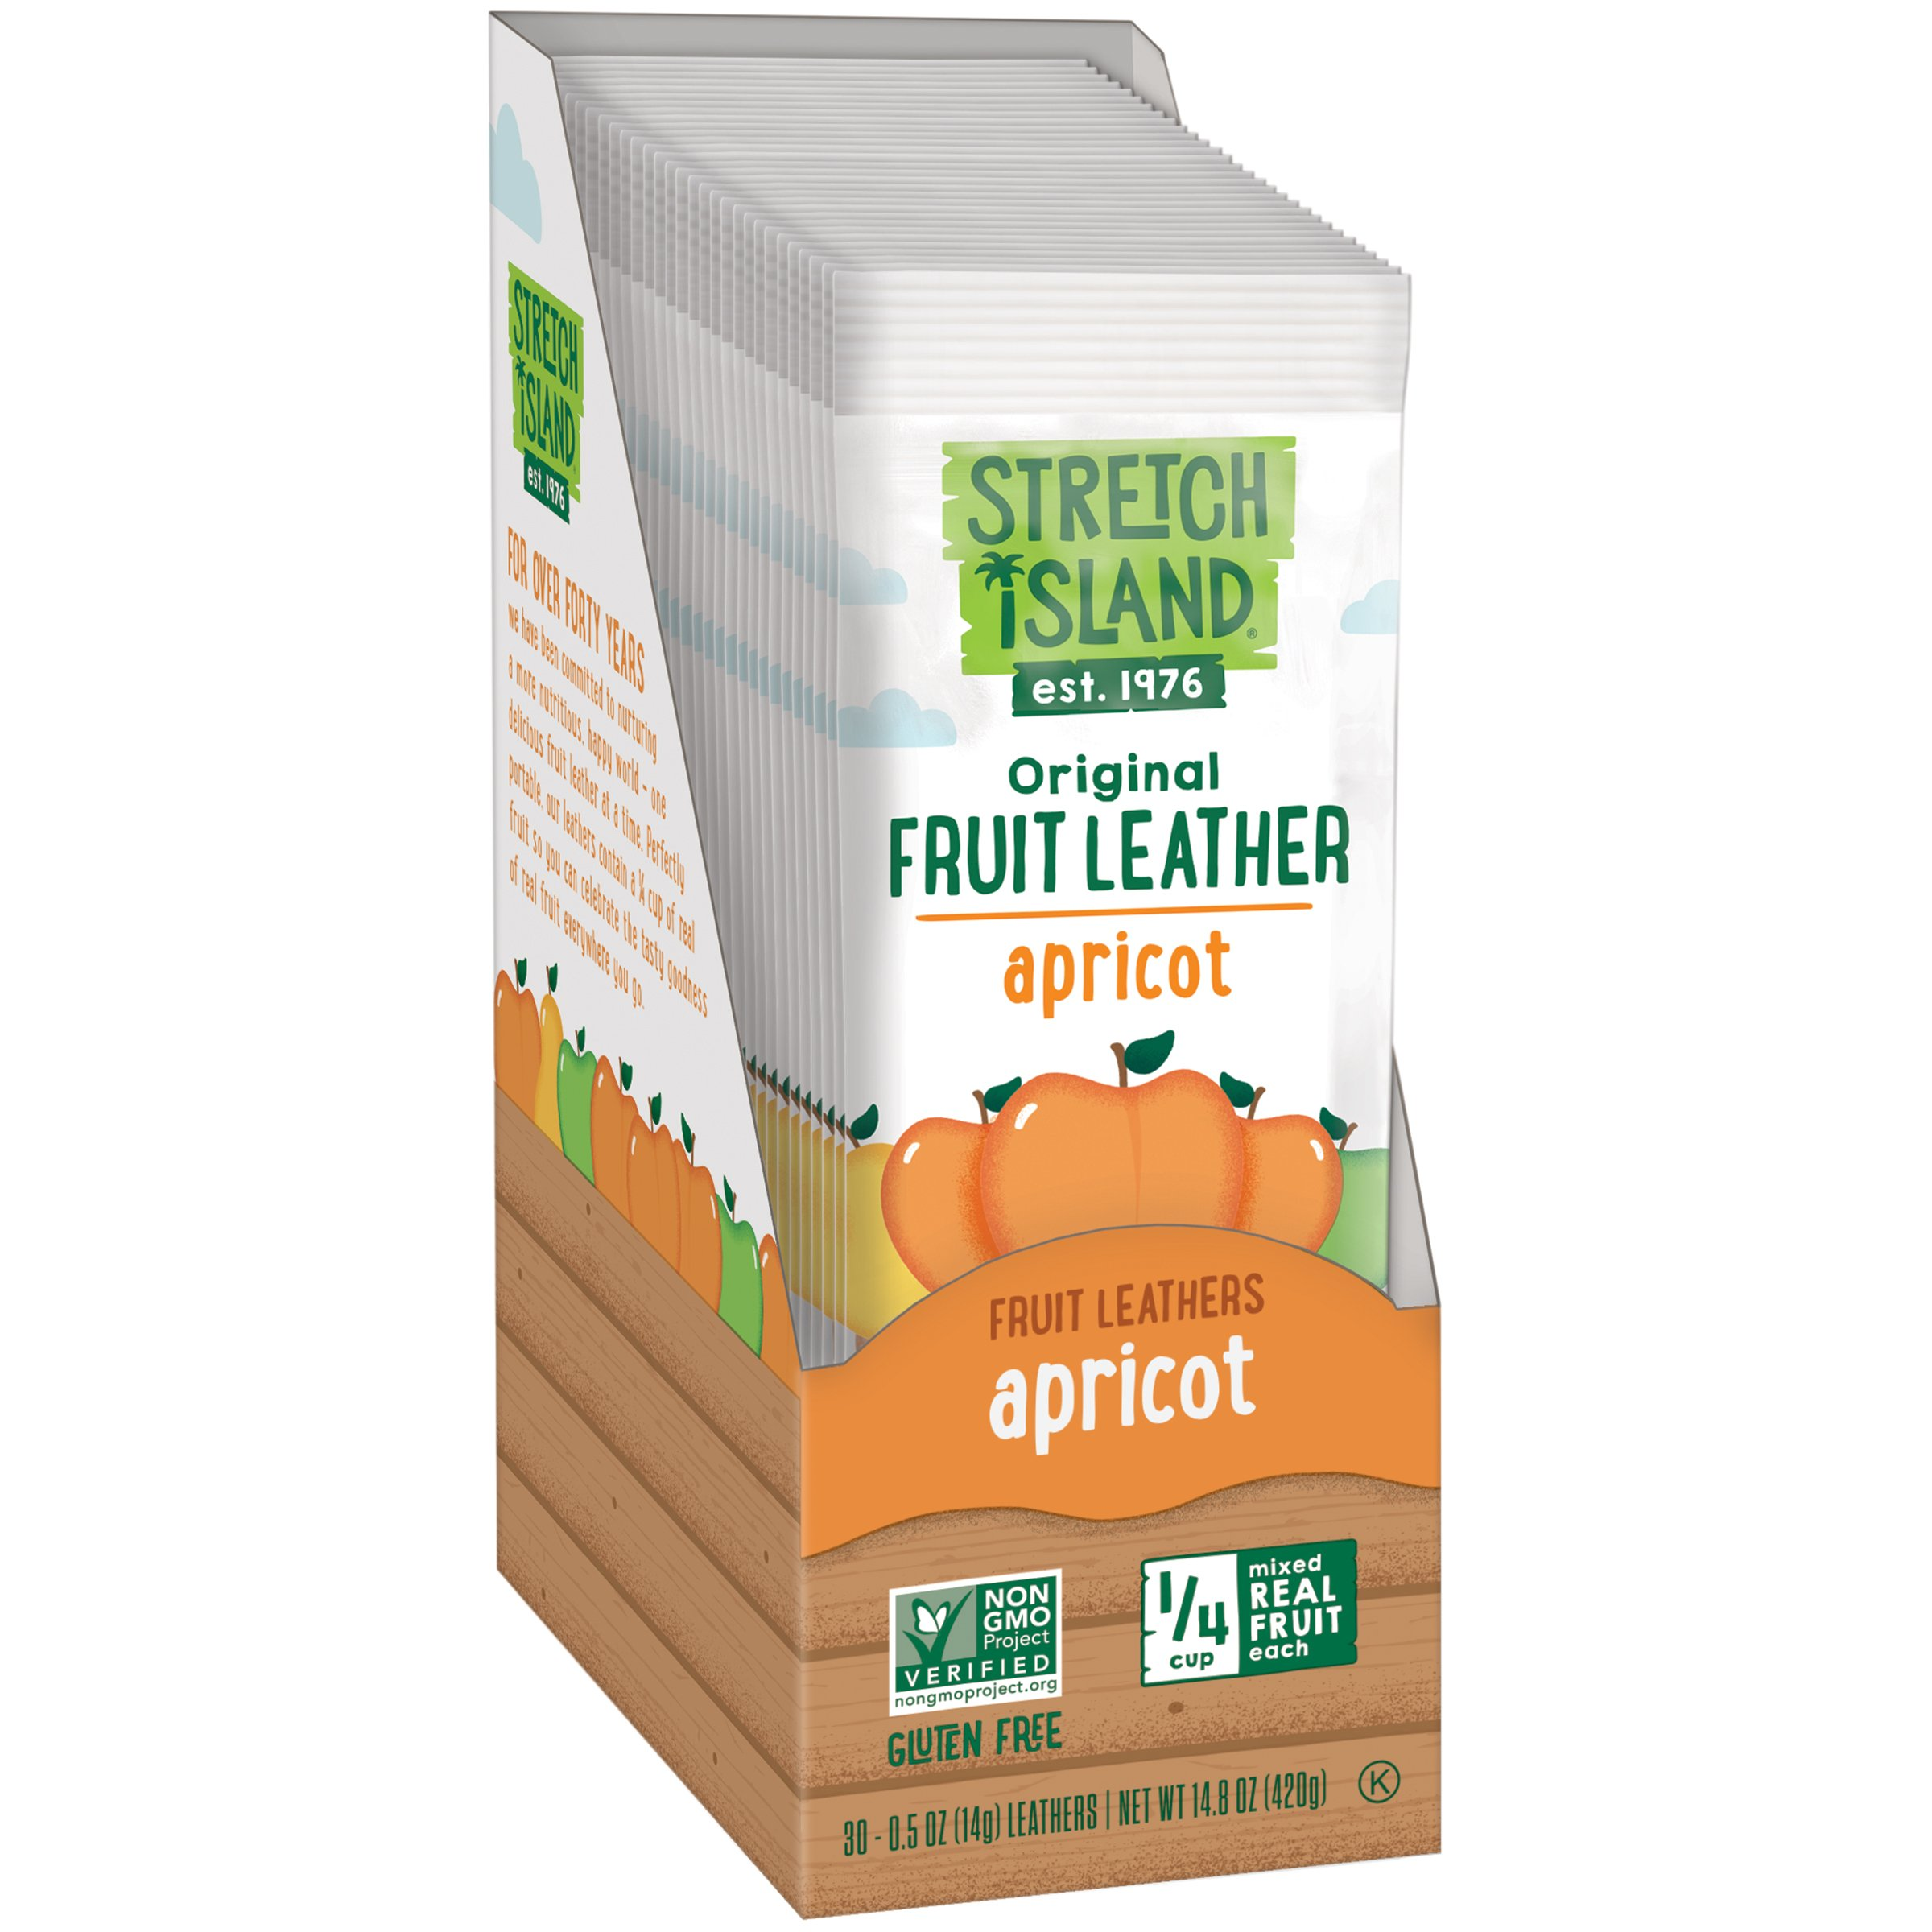 Stretch Island Tangy Apricot Fruit Leather, 0.5-ounce Bags (Pack of 30) by Stretch Island